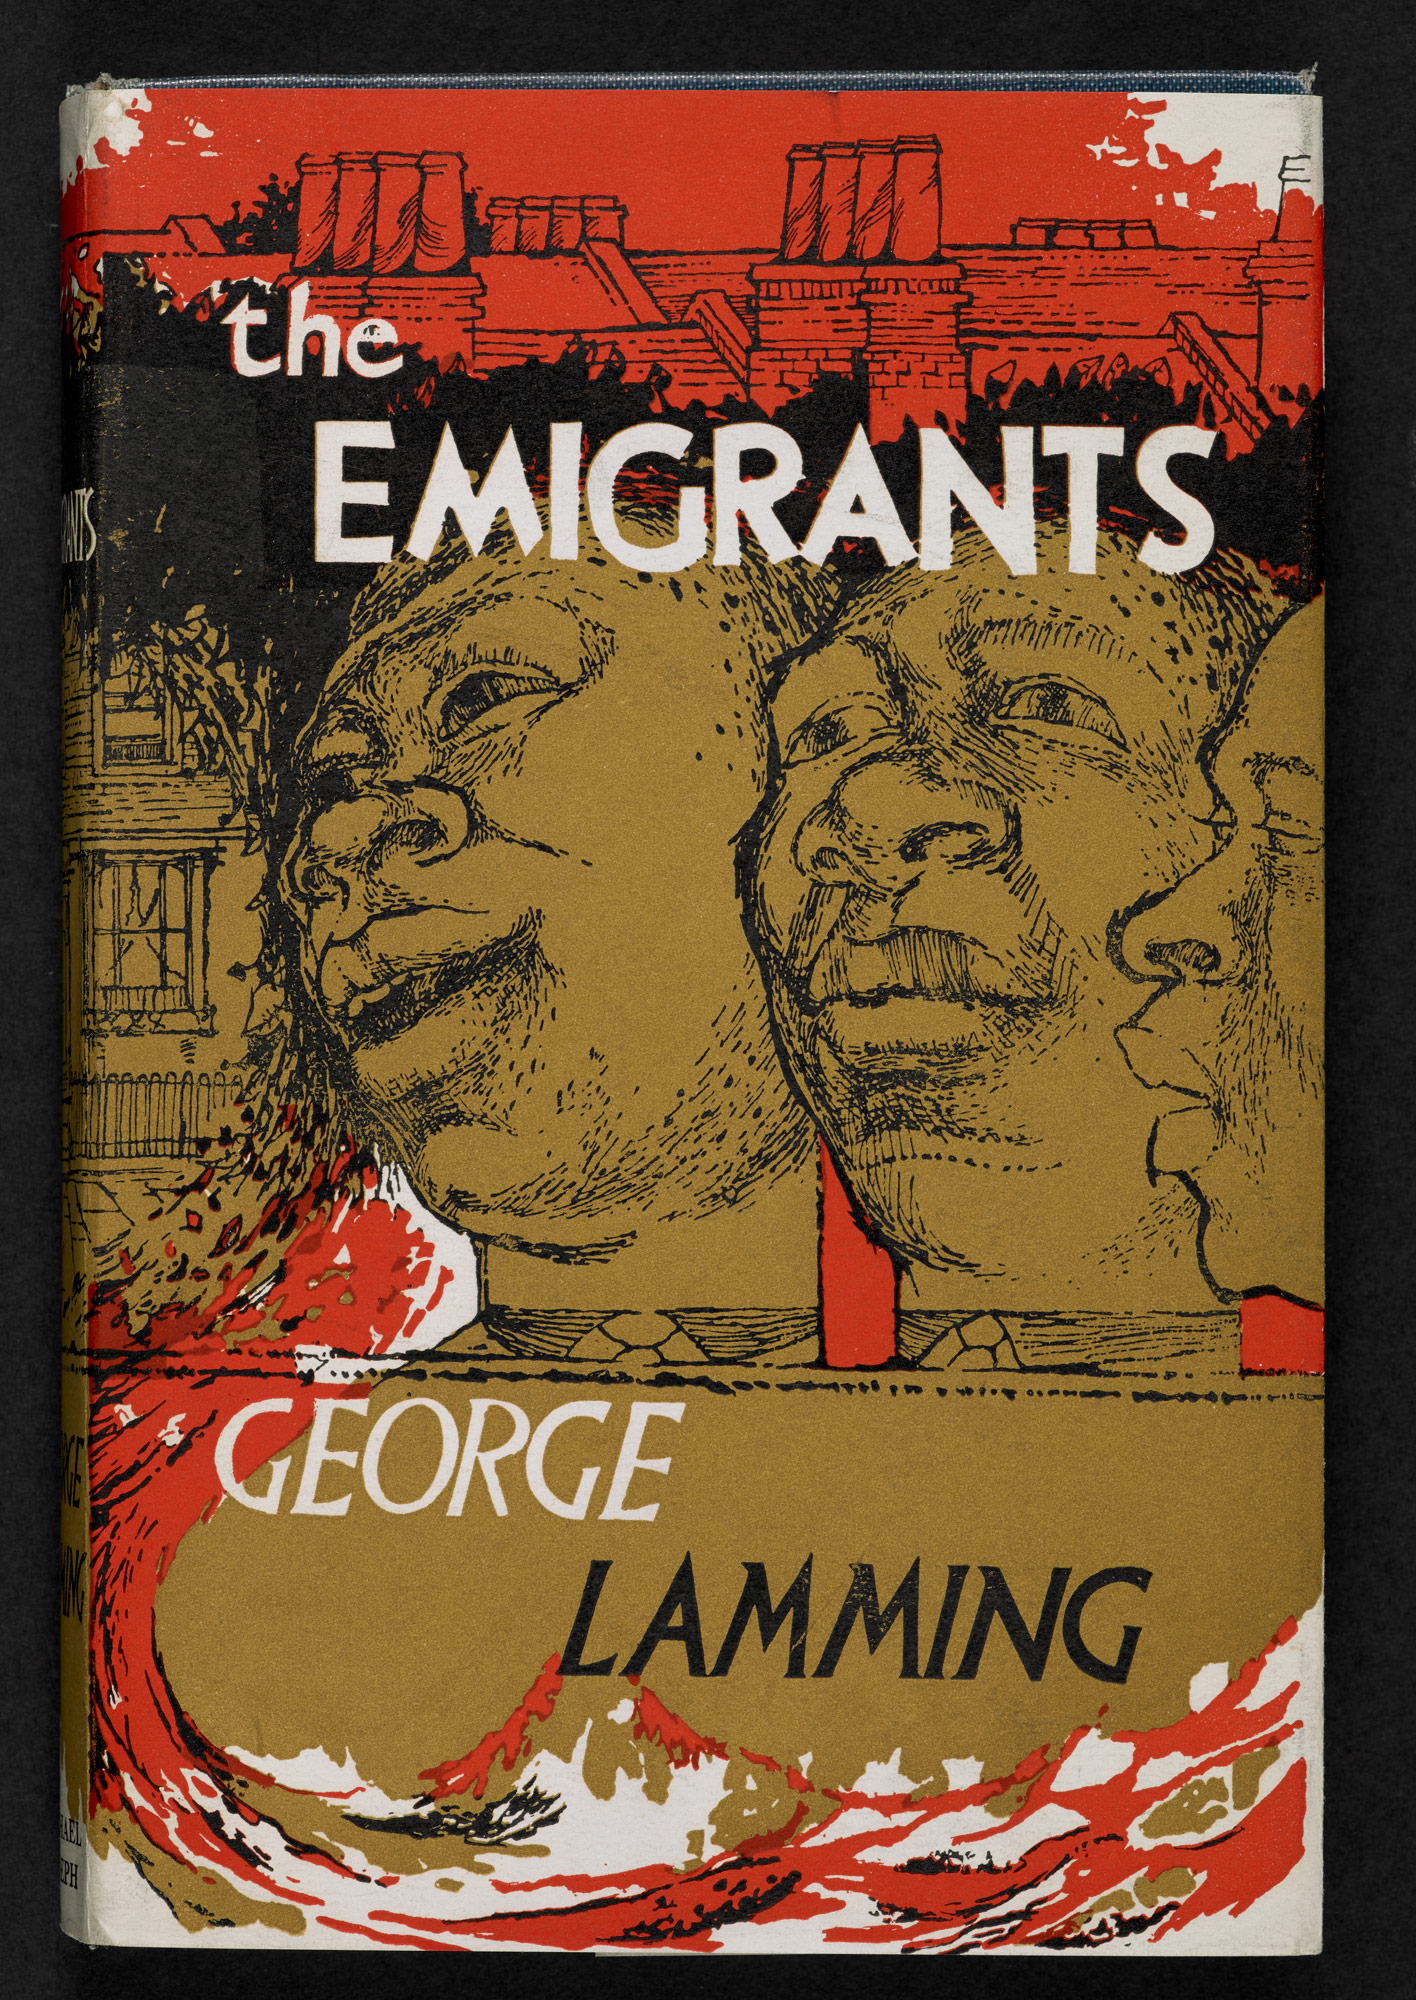 Dust jacket designed by Denis Williams for The Emigrants by George Lamming. Line drawing featuring a street scene, waves and the faces of three Black men.